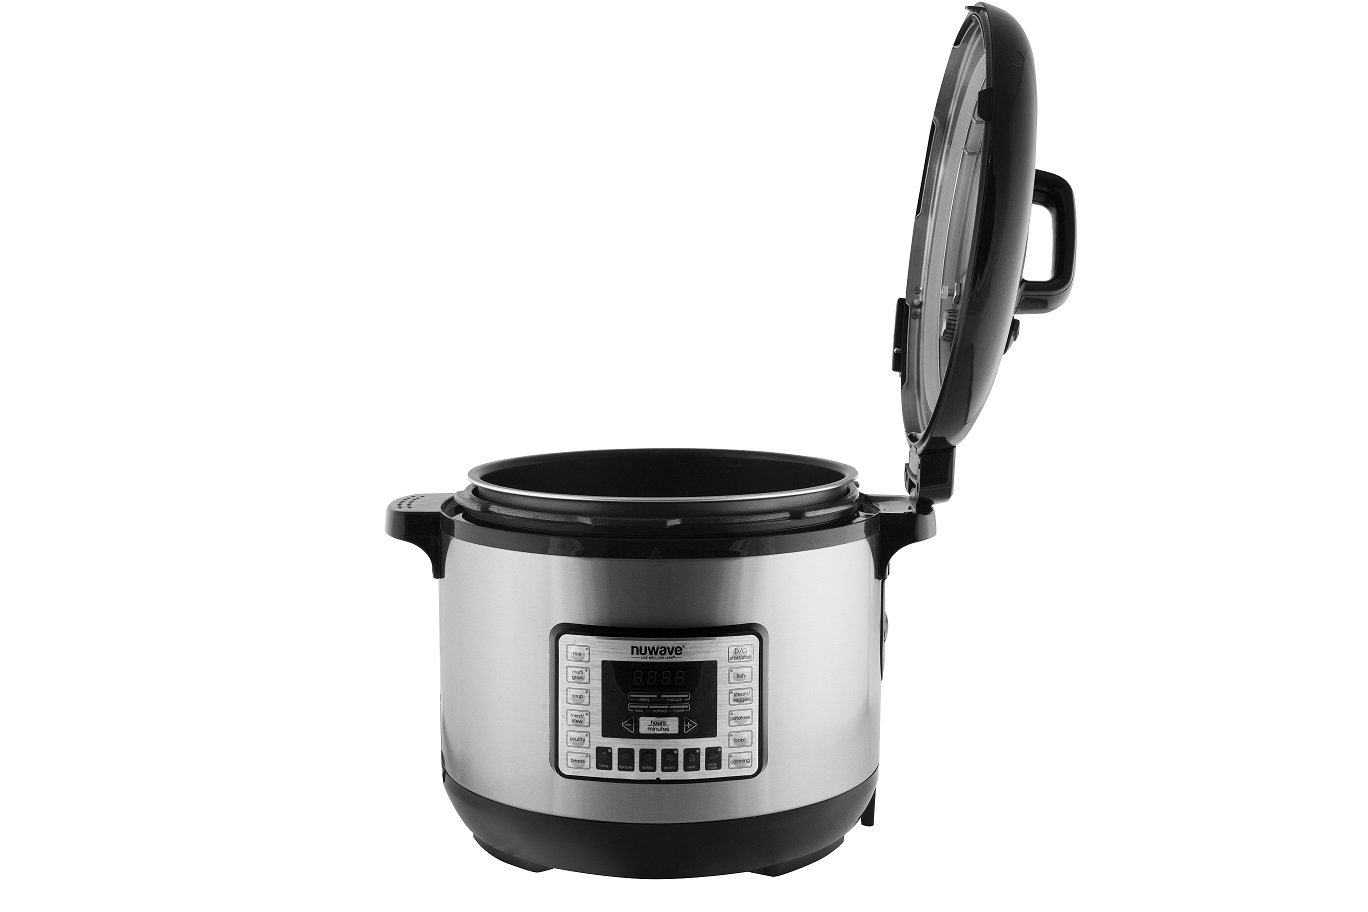 NuWave 33501 13 quart Electric Pressure Cooker, Stainless Steel, One Size